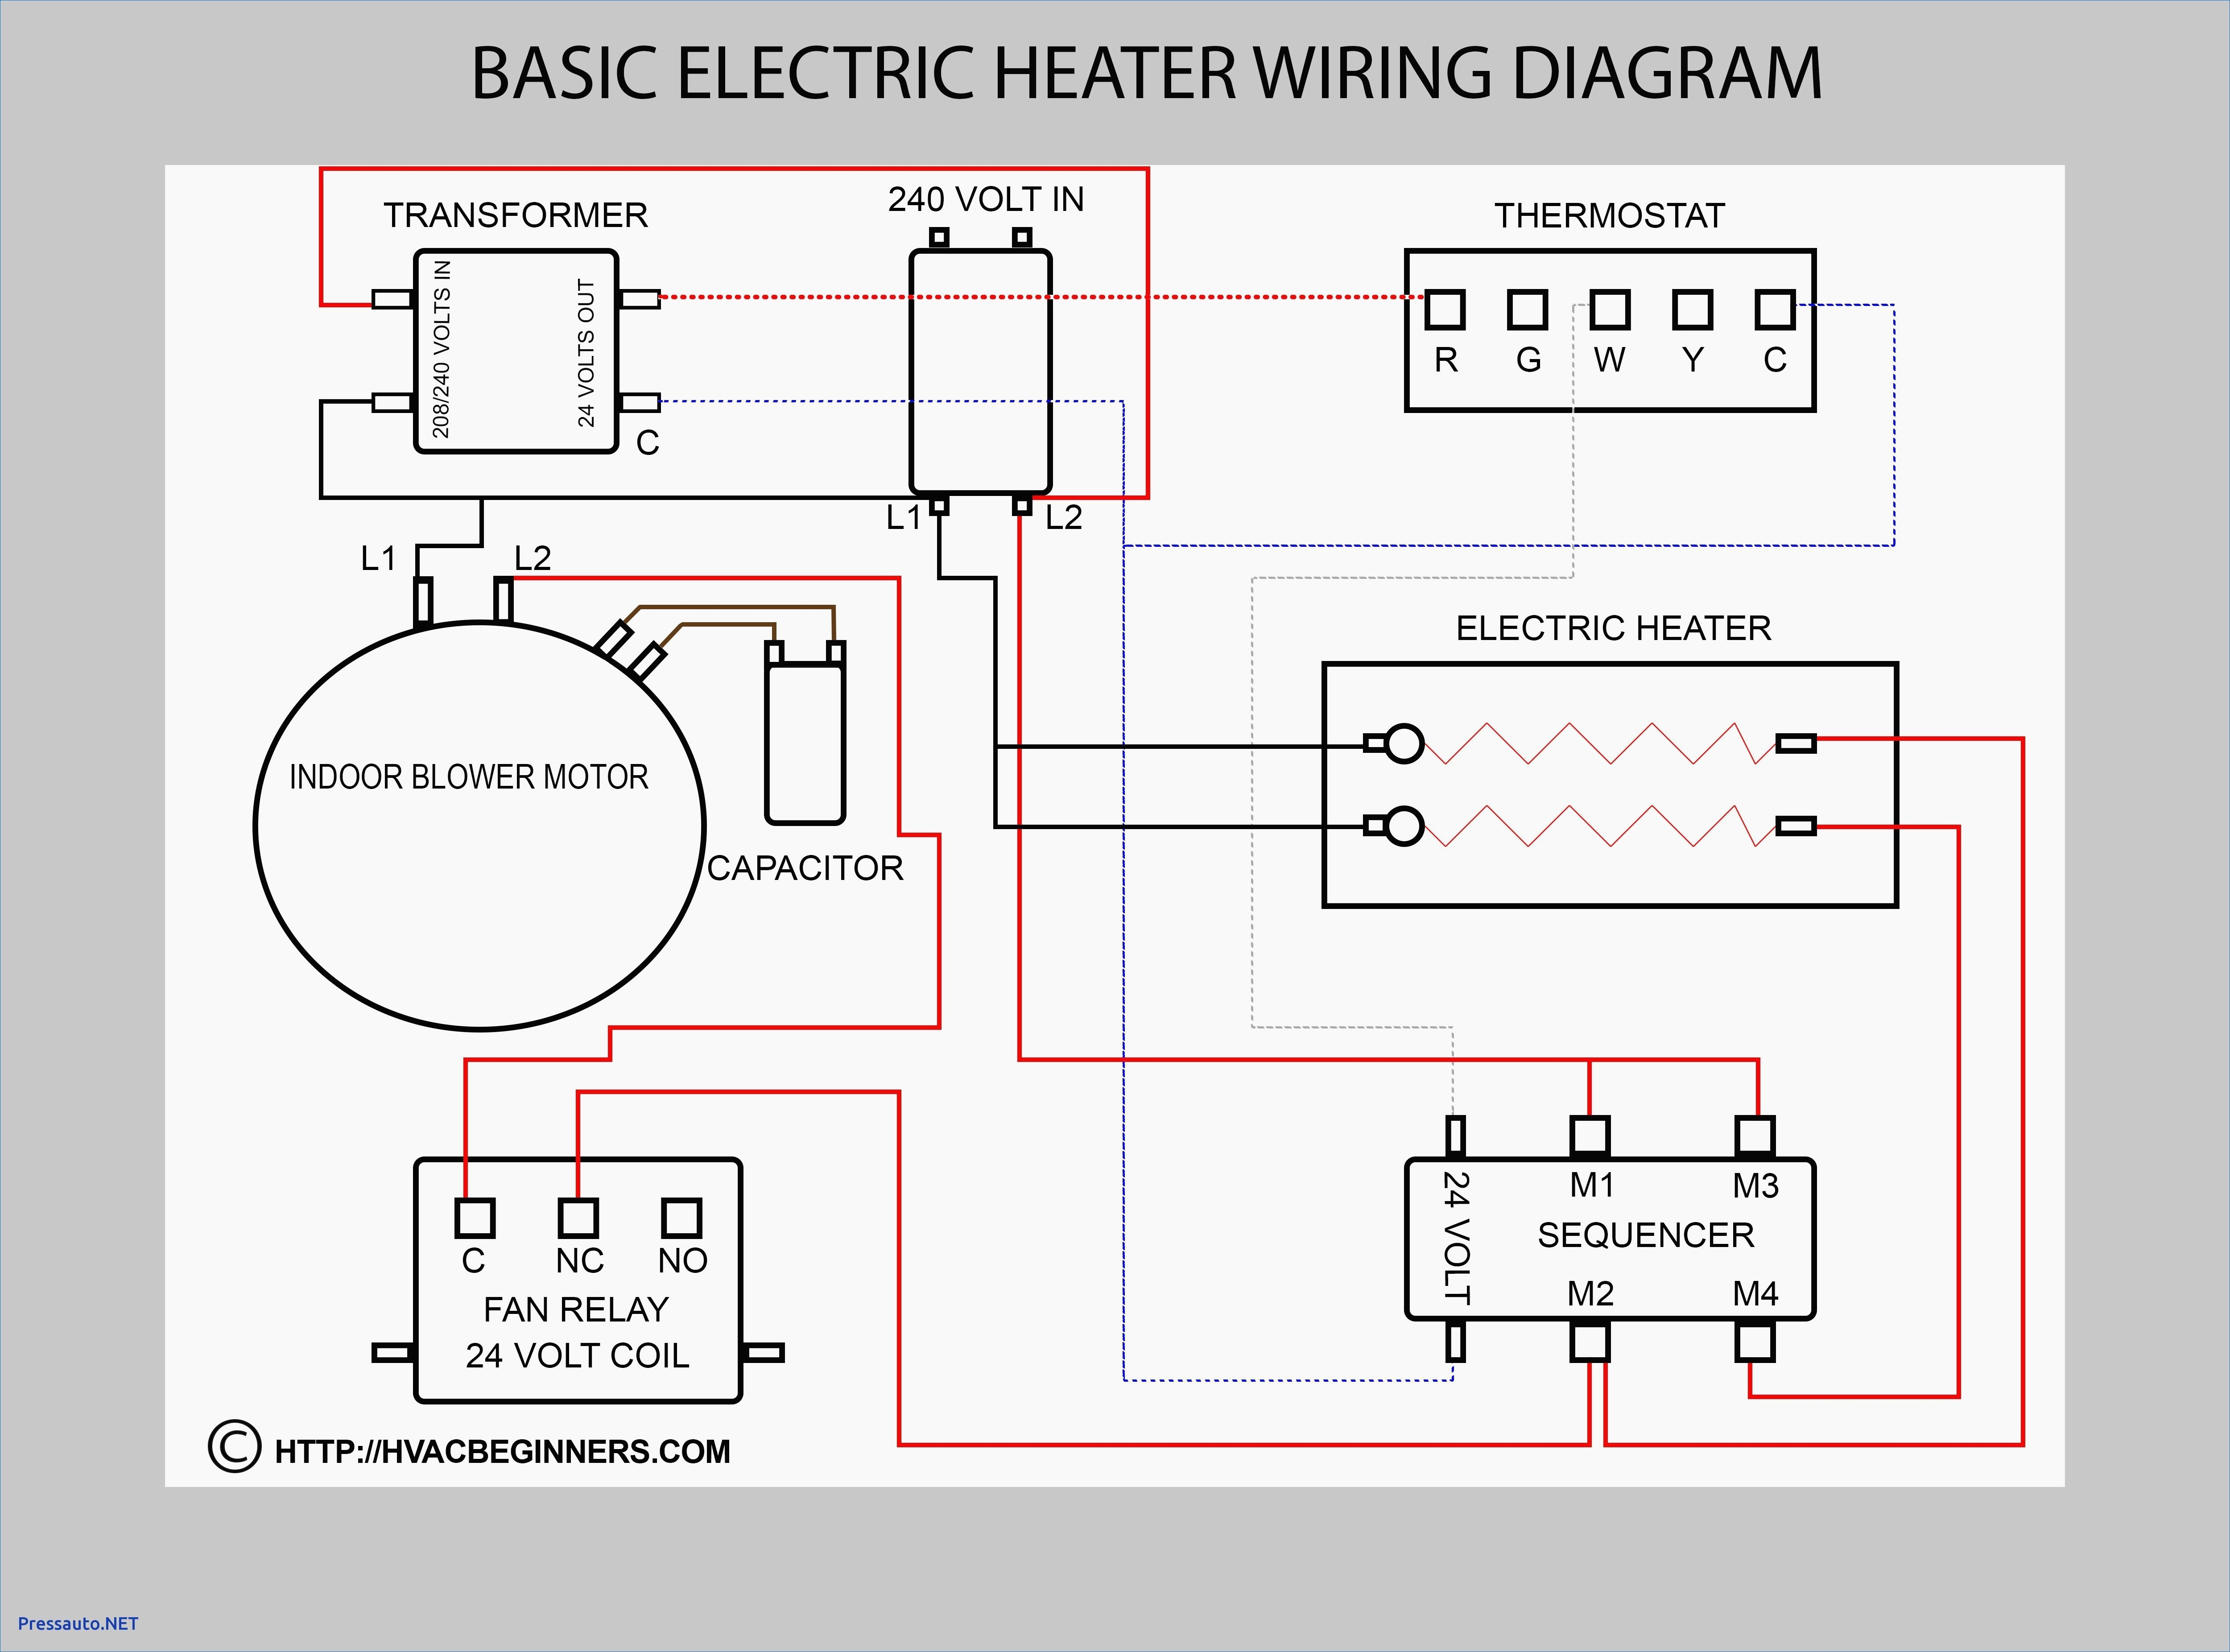 Heating and Cooling thermostat Wiring Diagram Elegant Heat Pump thermostat Wiring Diagram Diagram Of Heating and Cooling thermostat Wiring Diagram